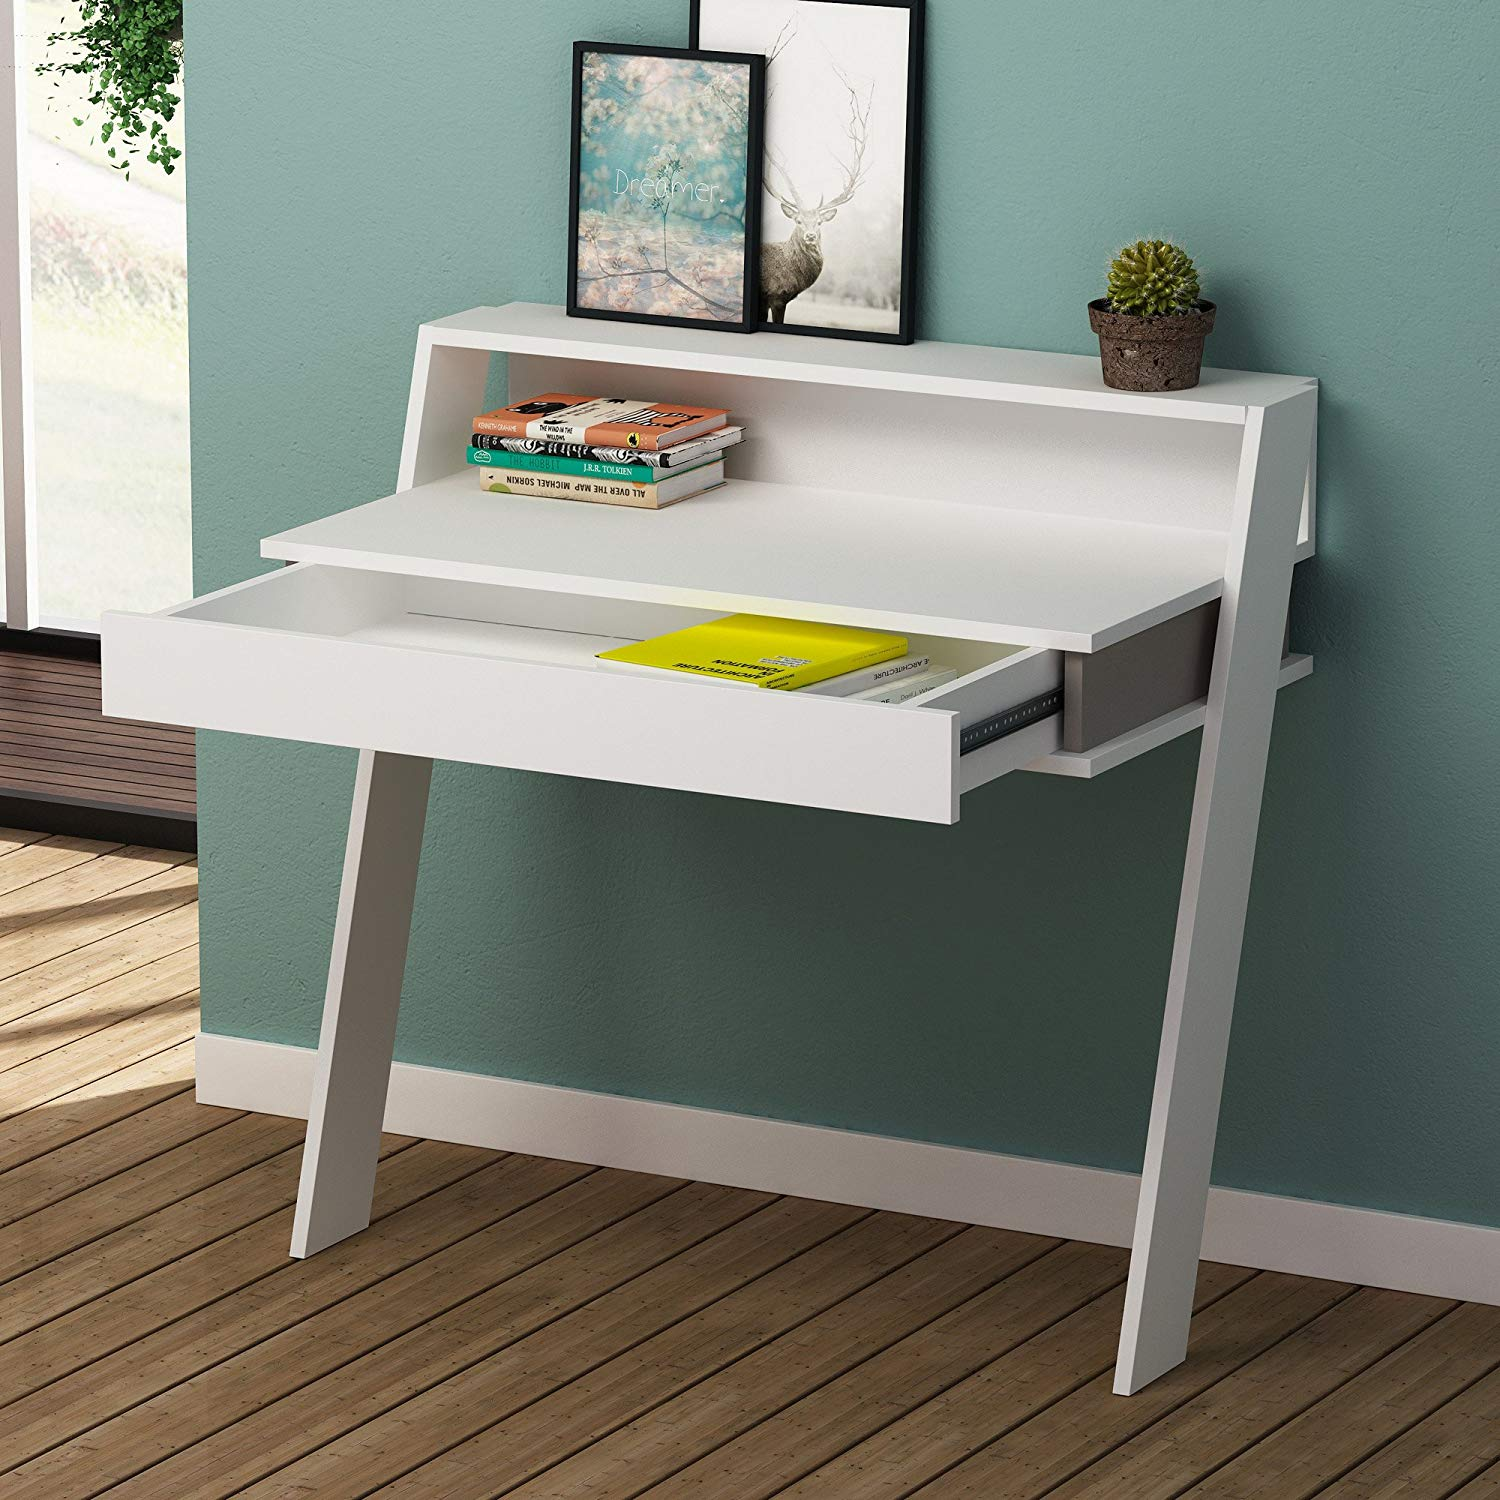 White Gray Study Desk with Drawer, 100% Melamine Coated Particle Board - Functional Modern Computer Desk, Study & Laptop Table for Home, Office, Living Room, Study Room